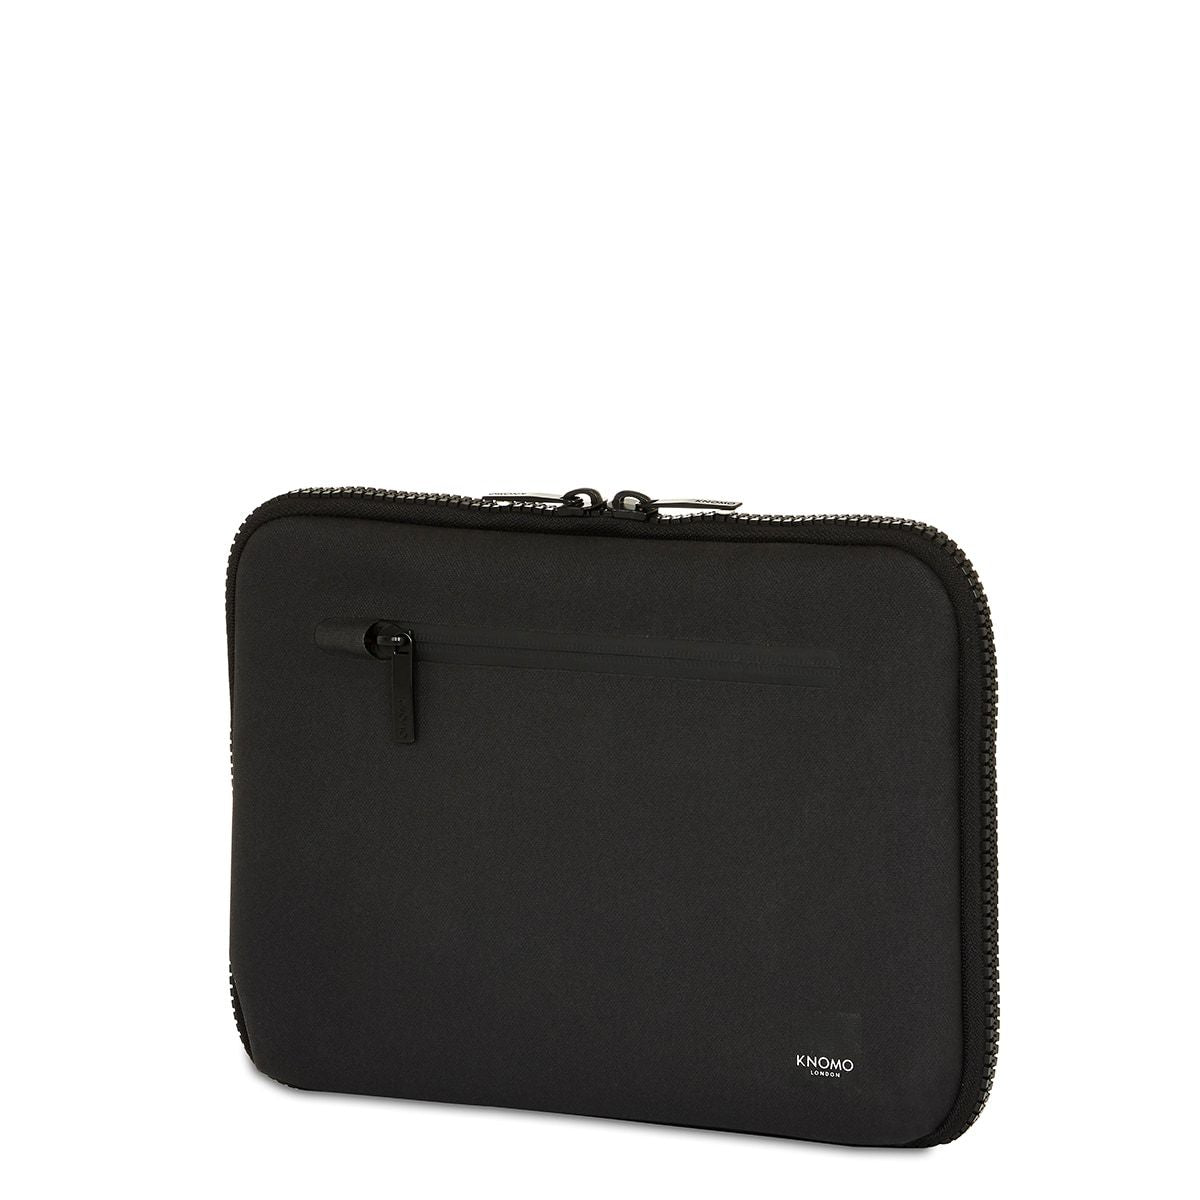 "KNOMO Thames Knomad Organiser Tech Organiser Three Quarter View 10.5"" -  Black 